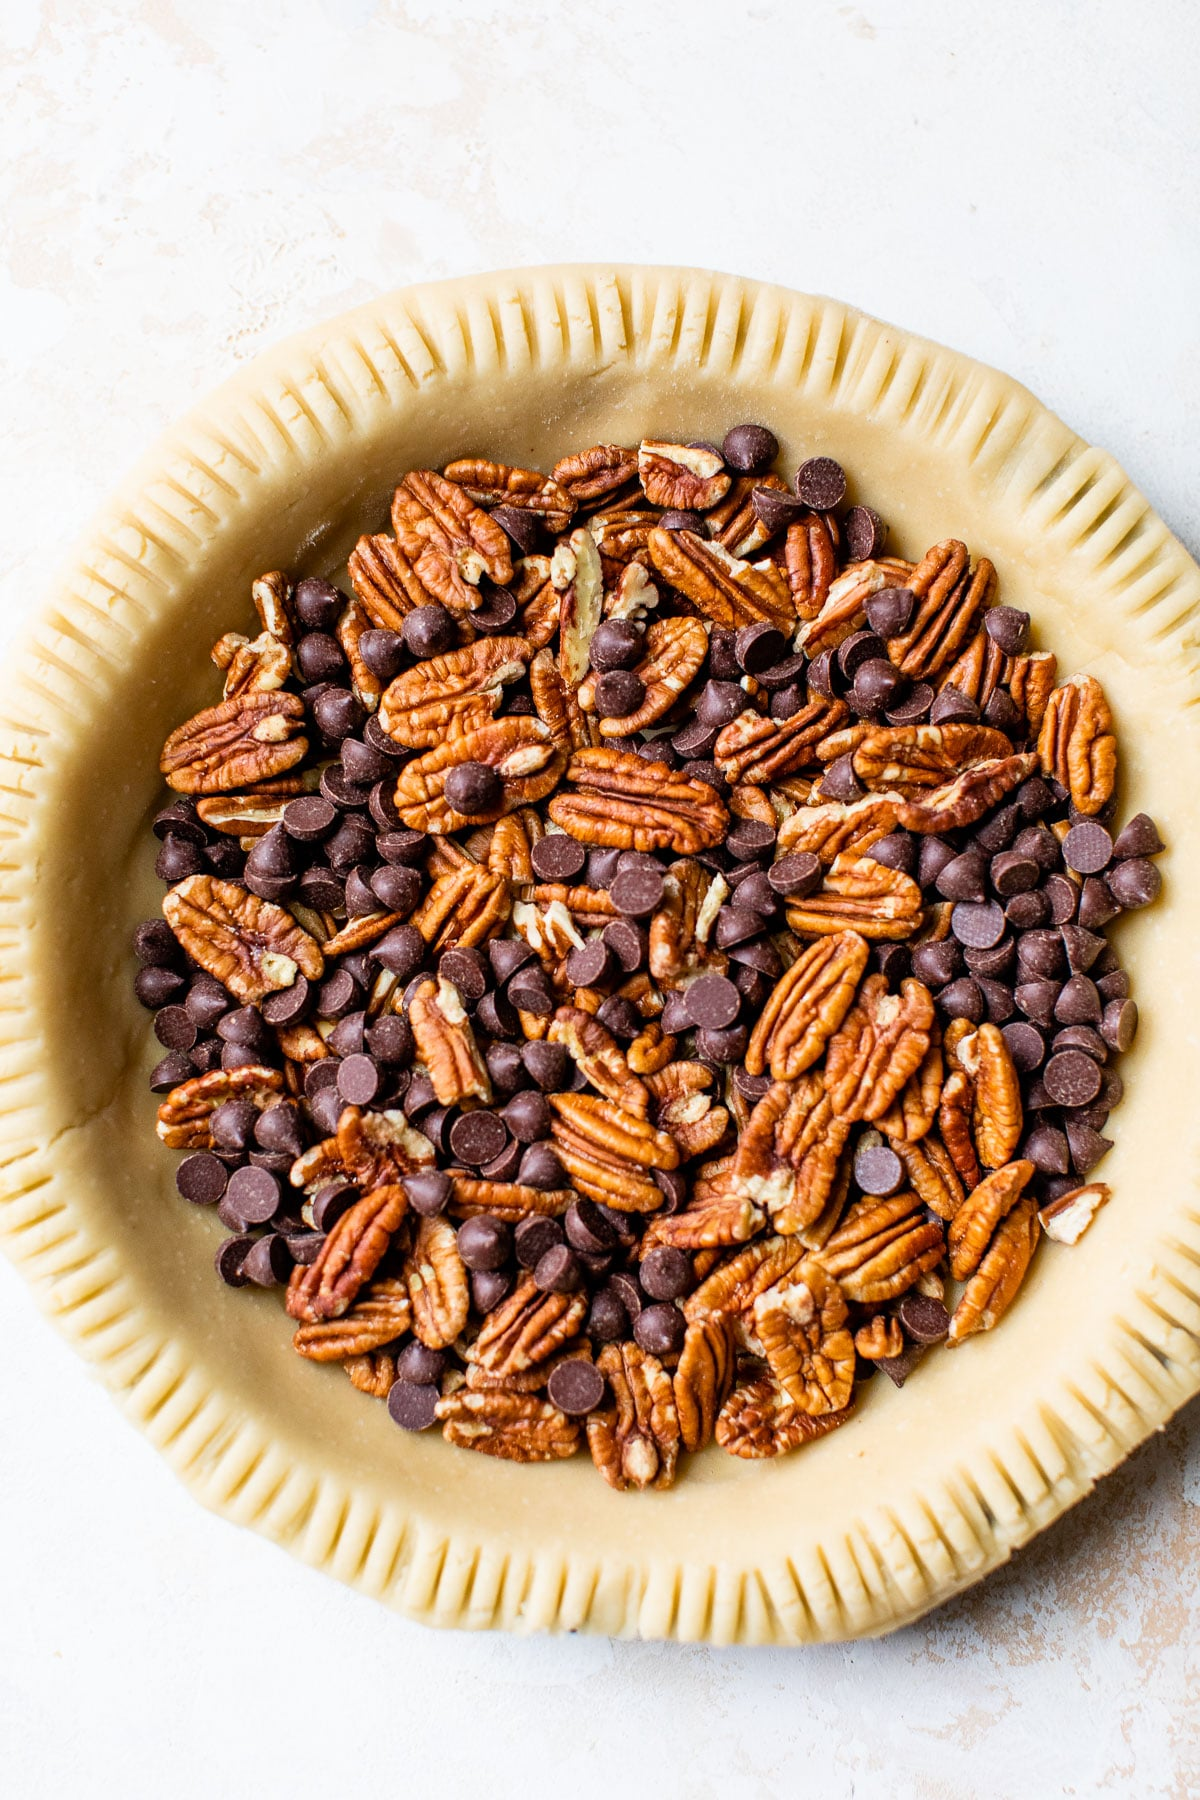 pie crust filled with pecans and chocolate chips